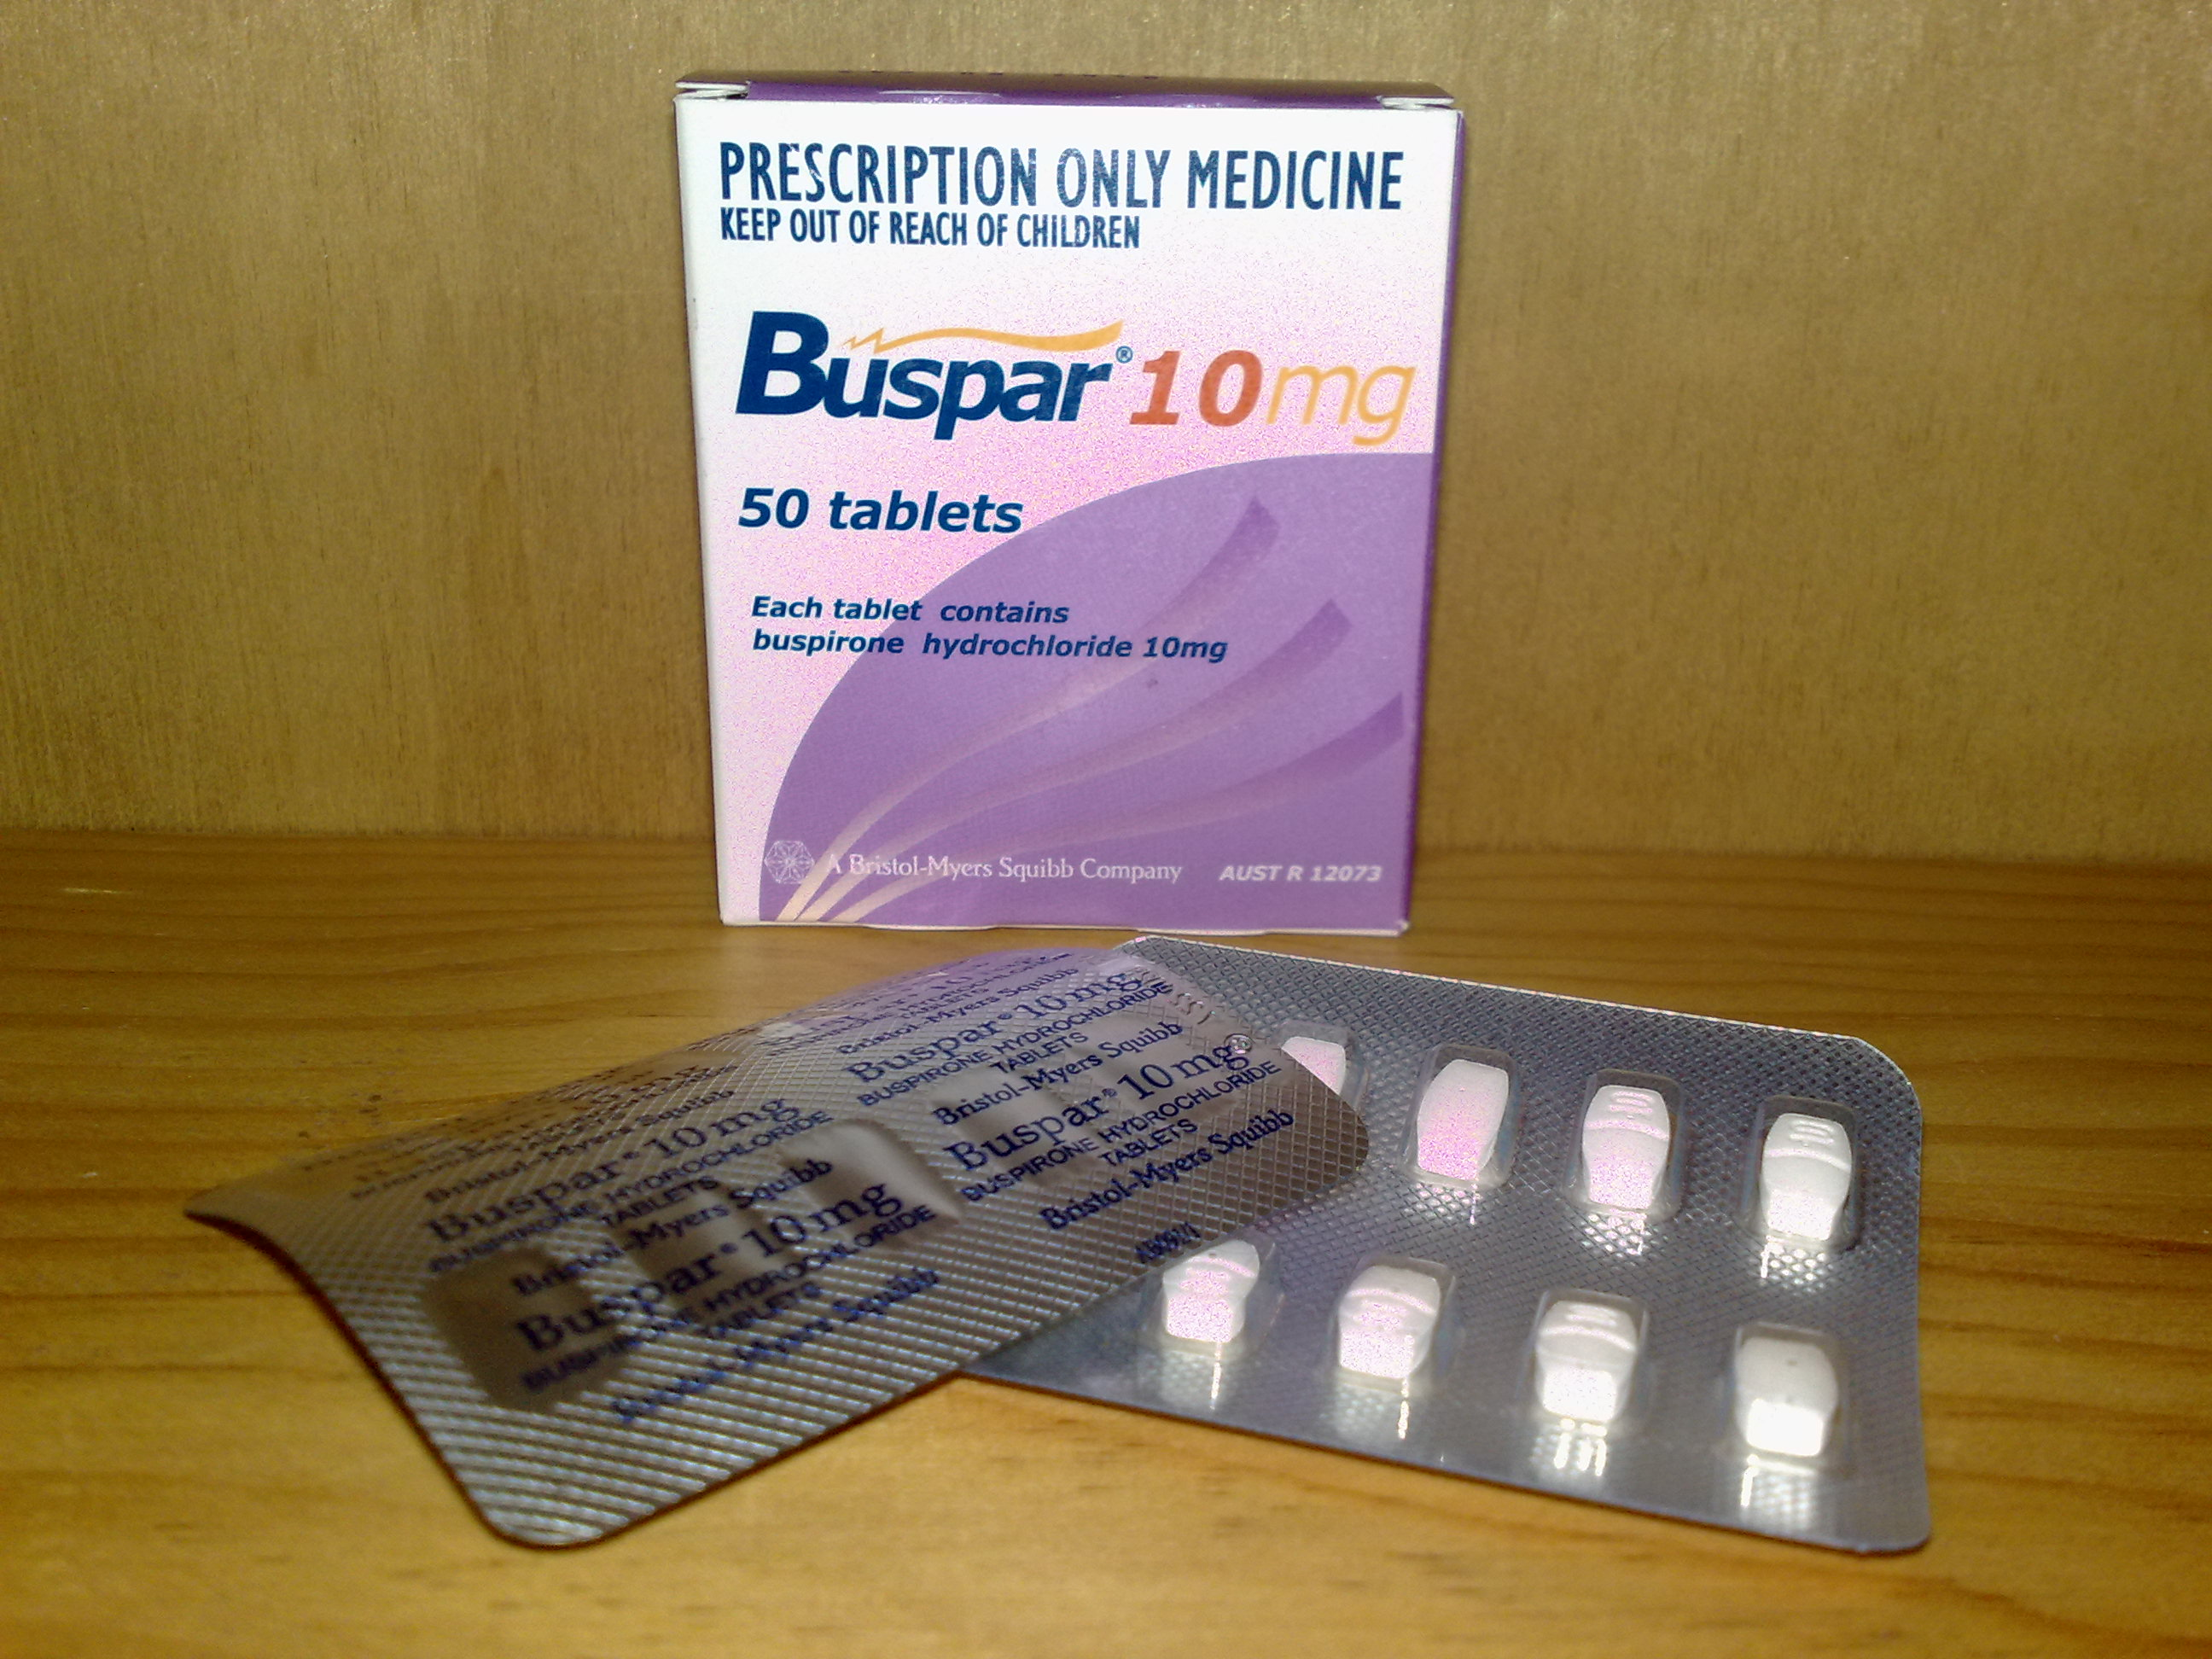 File:Buspar 10 mg.jpg - Wikipedia